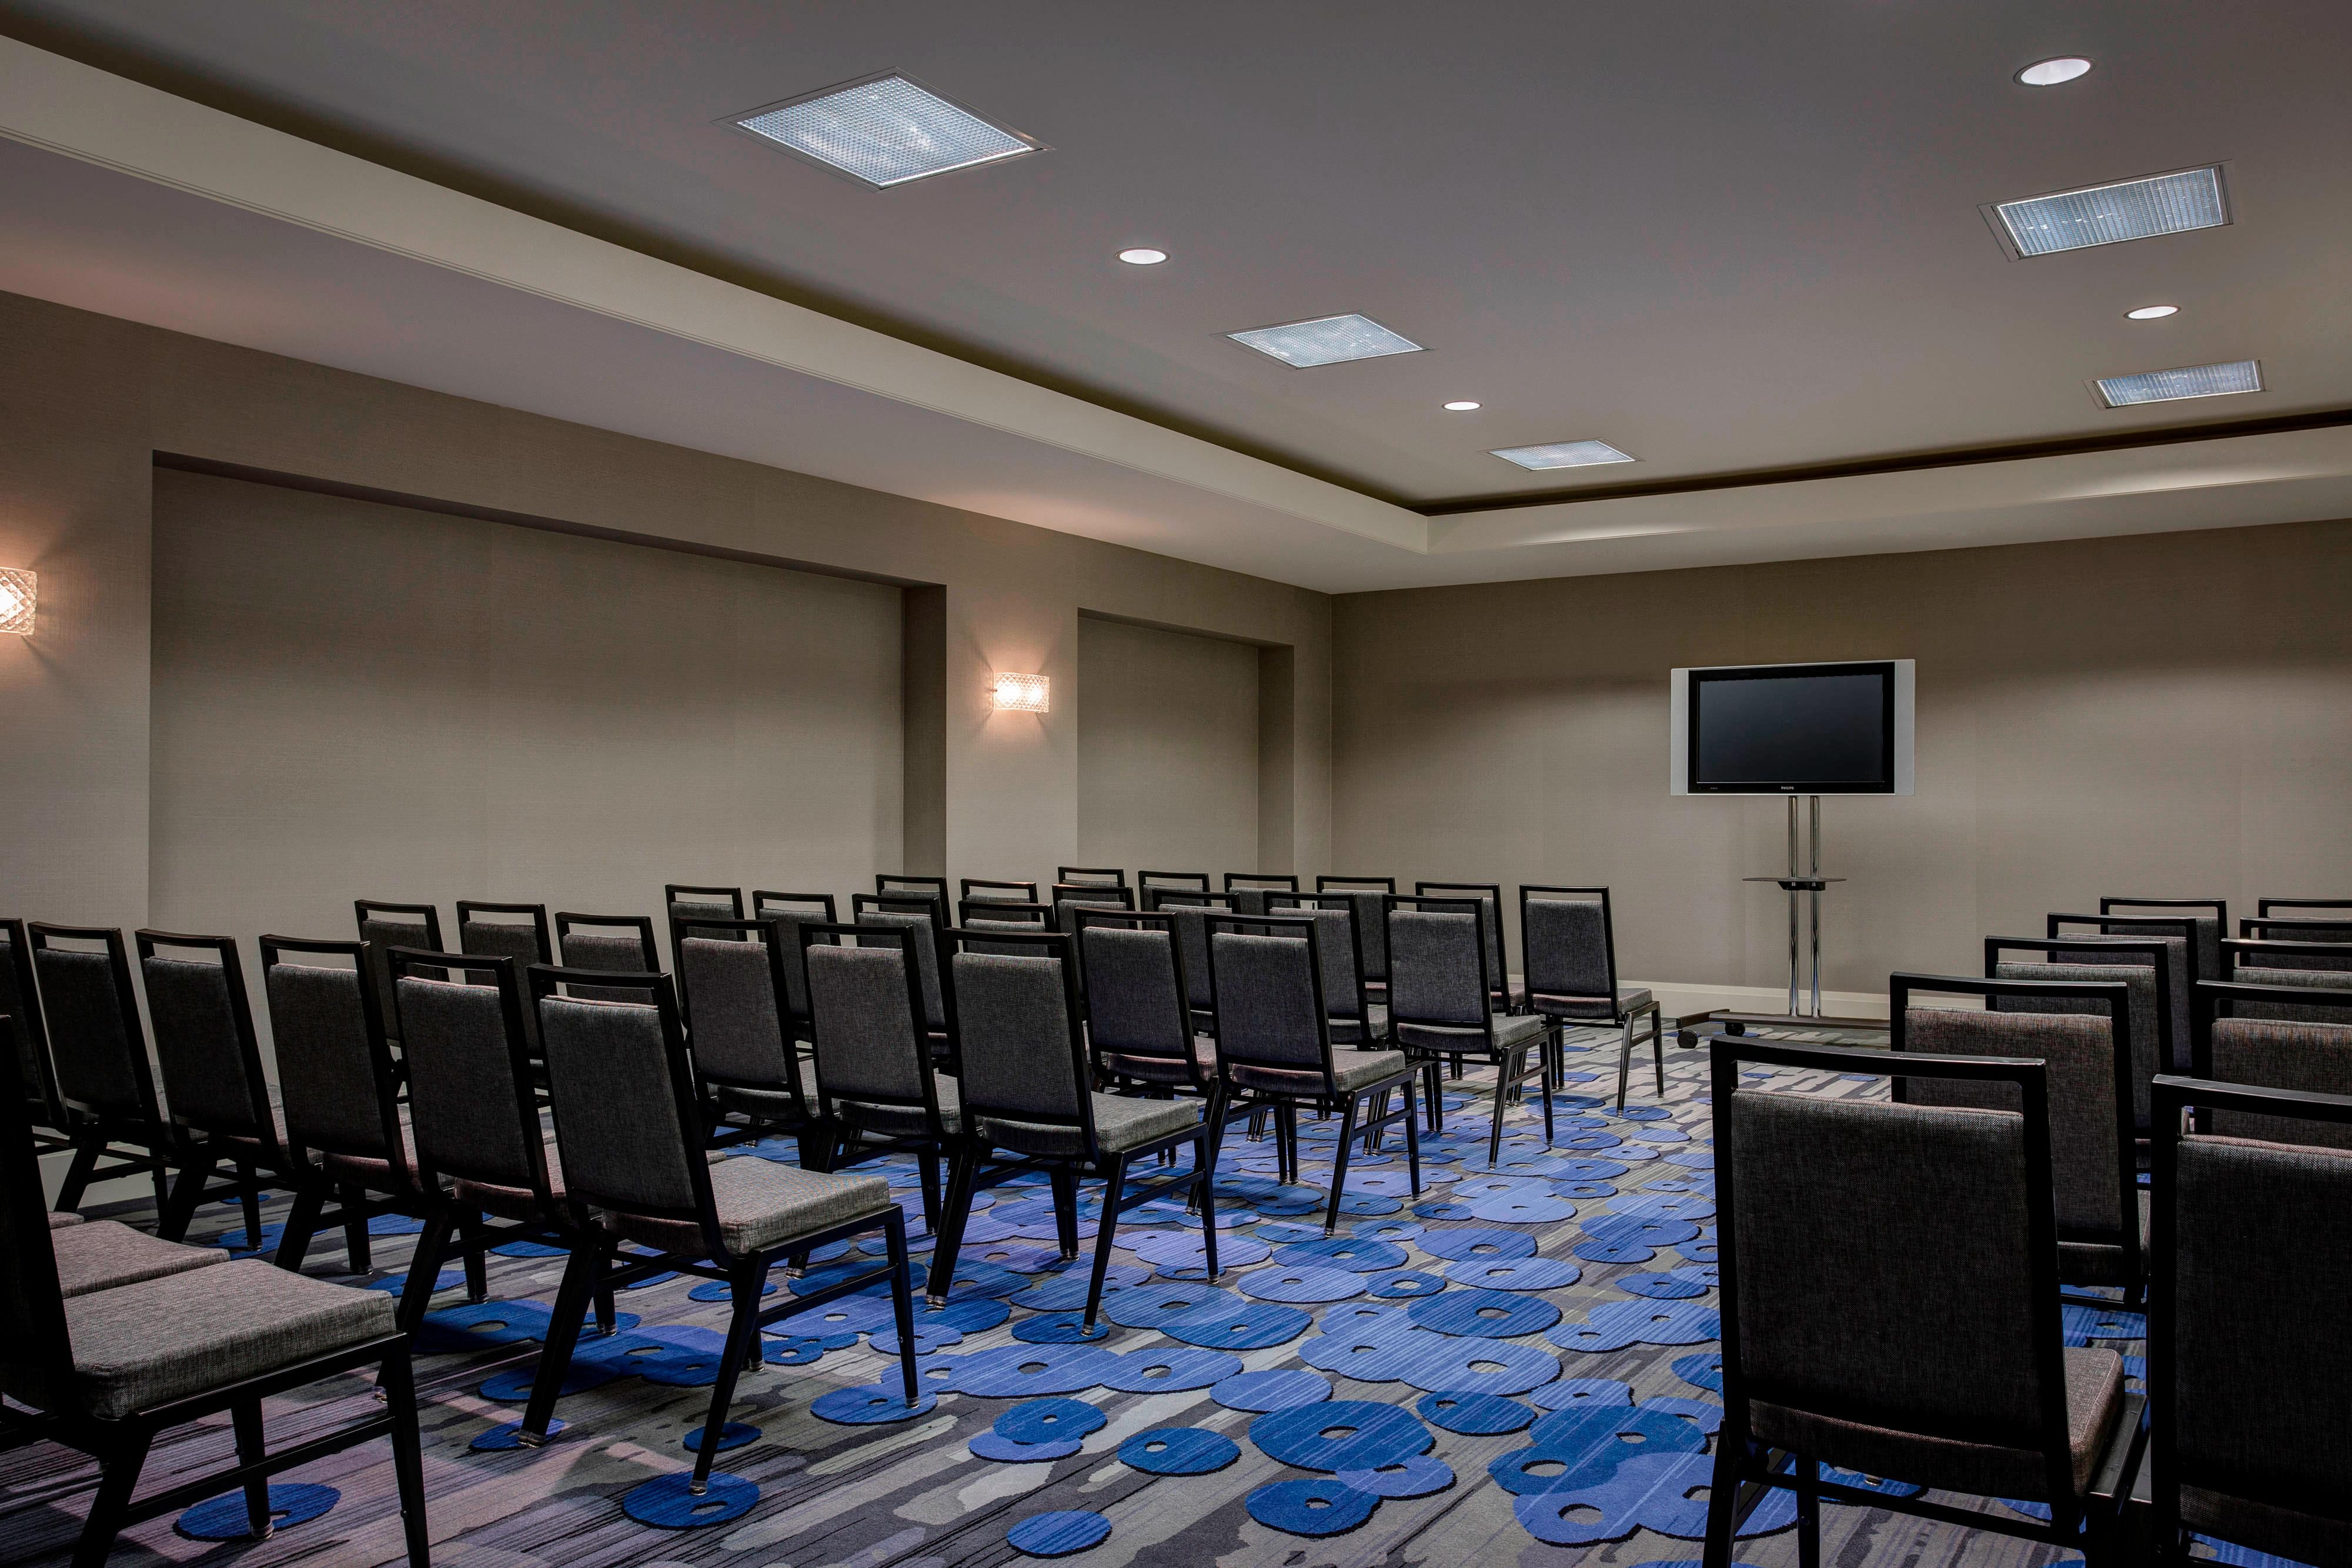 Classroom-Style Meeting Room